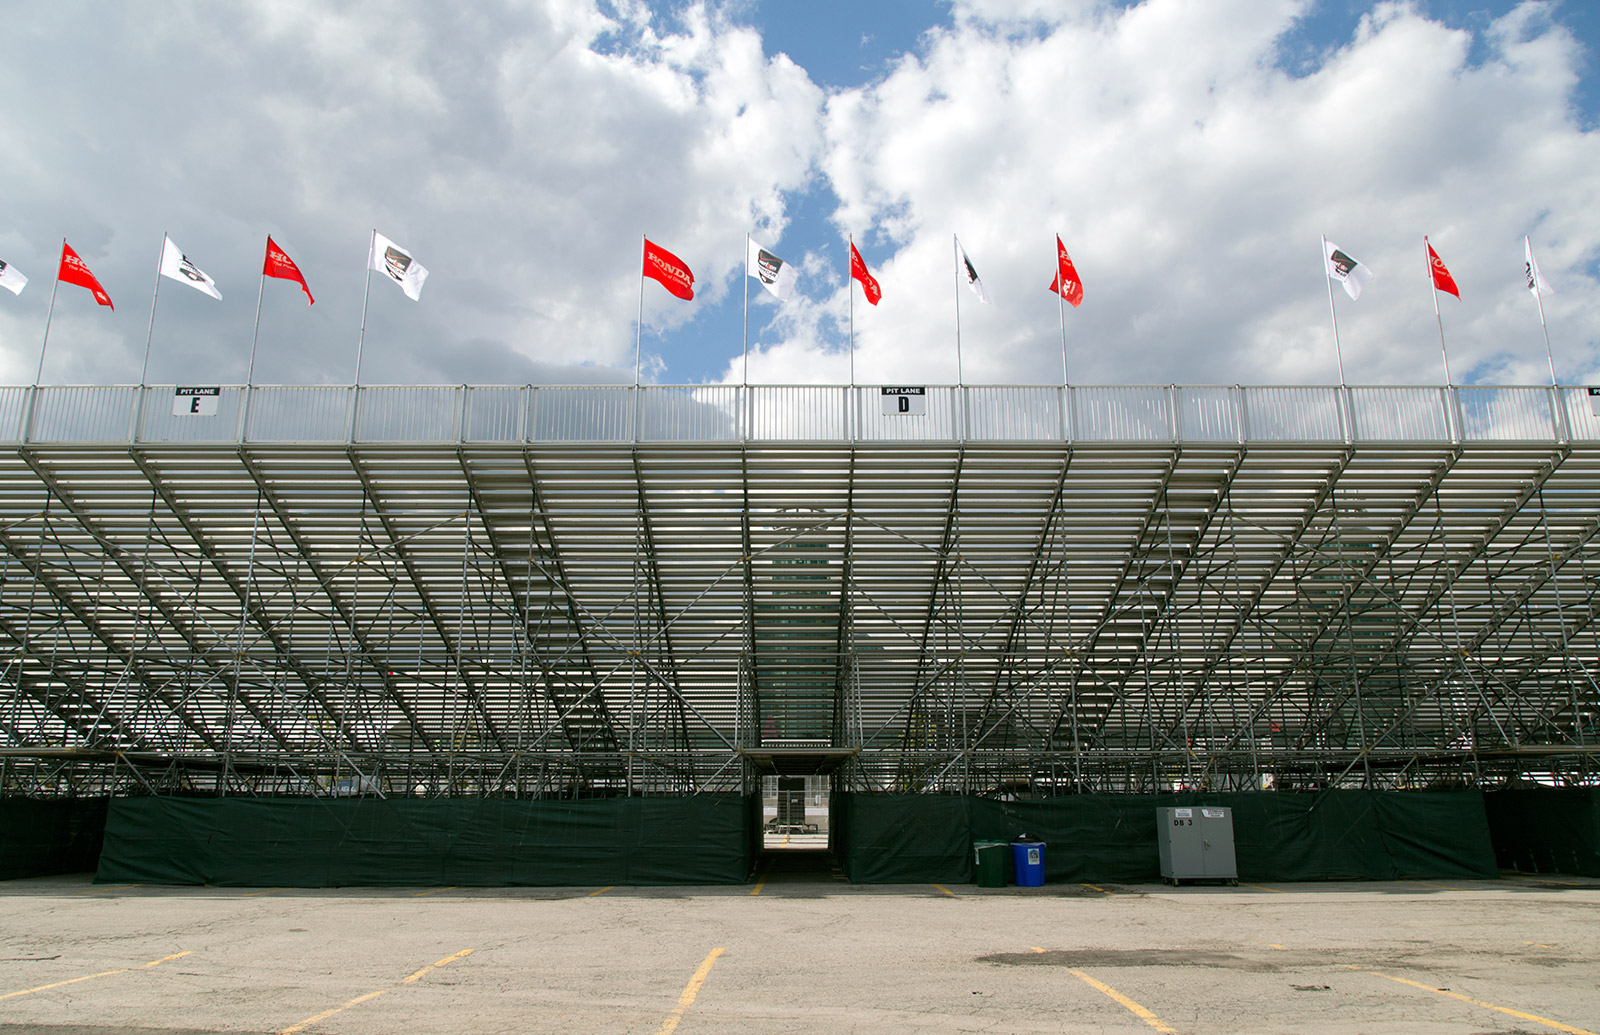 20140718. Flags fly over the green grandstand grid a day before